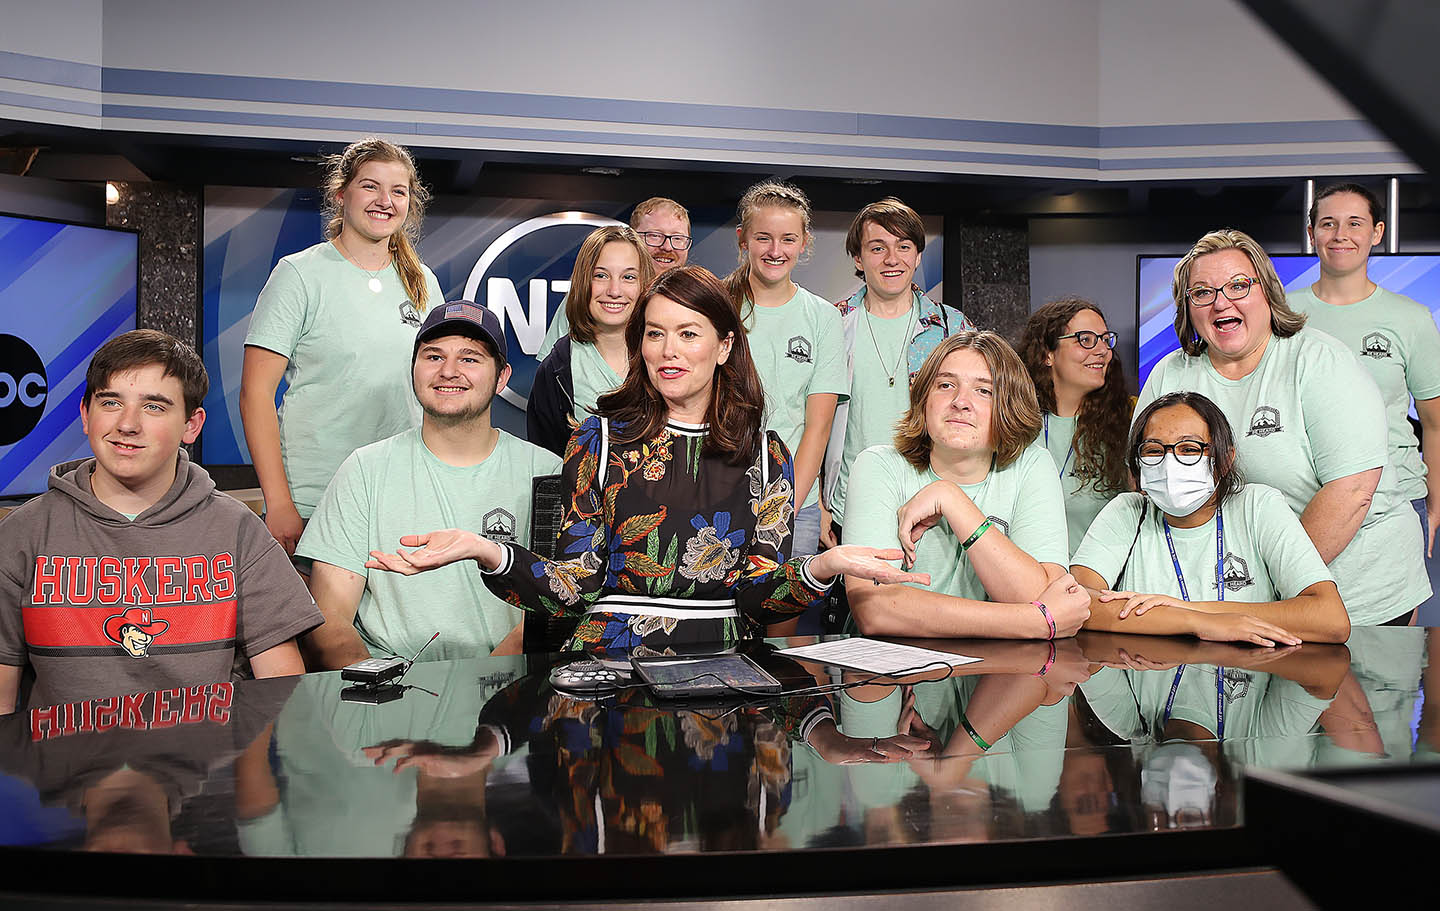 NTV news anchor Colleen Williams introduces members of UNK's Digital Expressions Media Camp during Tuesday evening's newscast. (Photos by Erika Pritchard, UNK Communications)